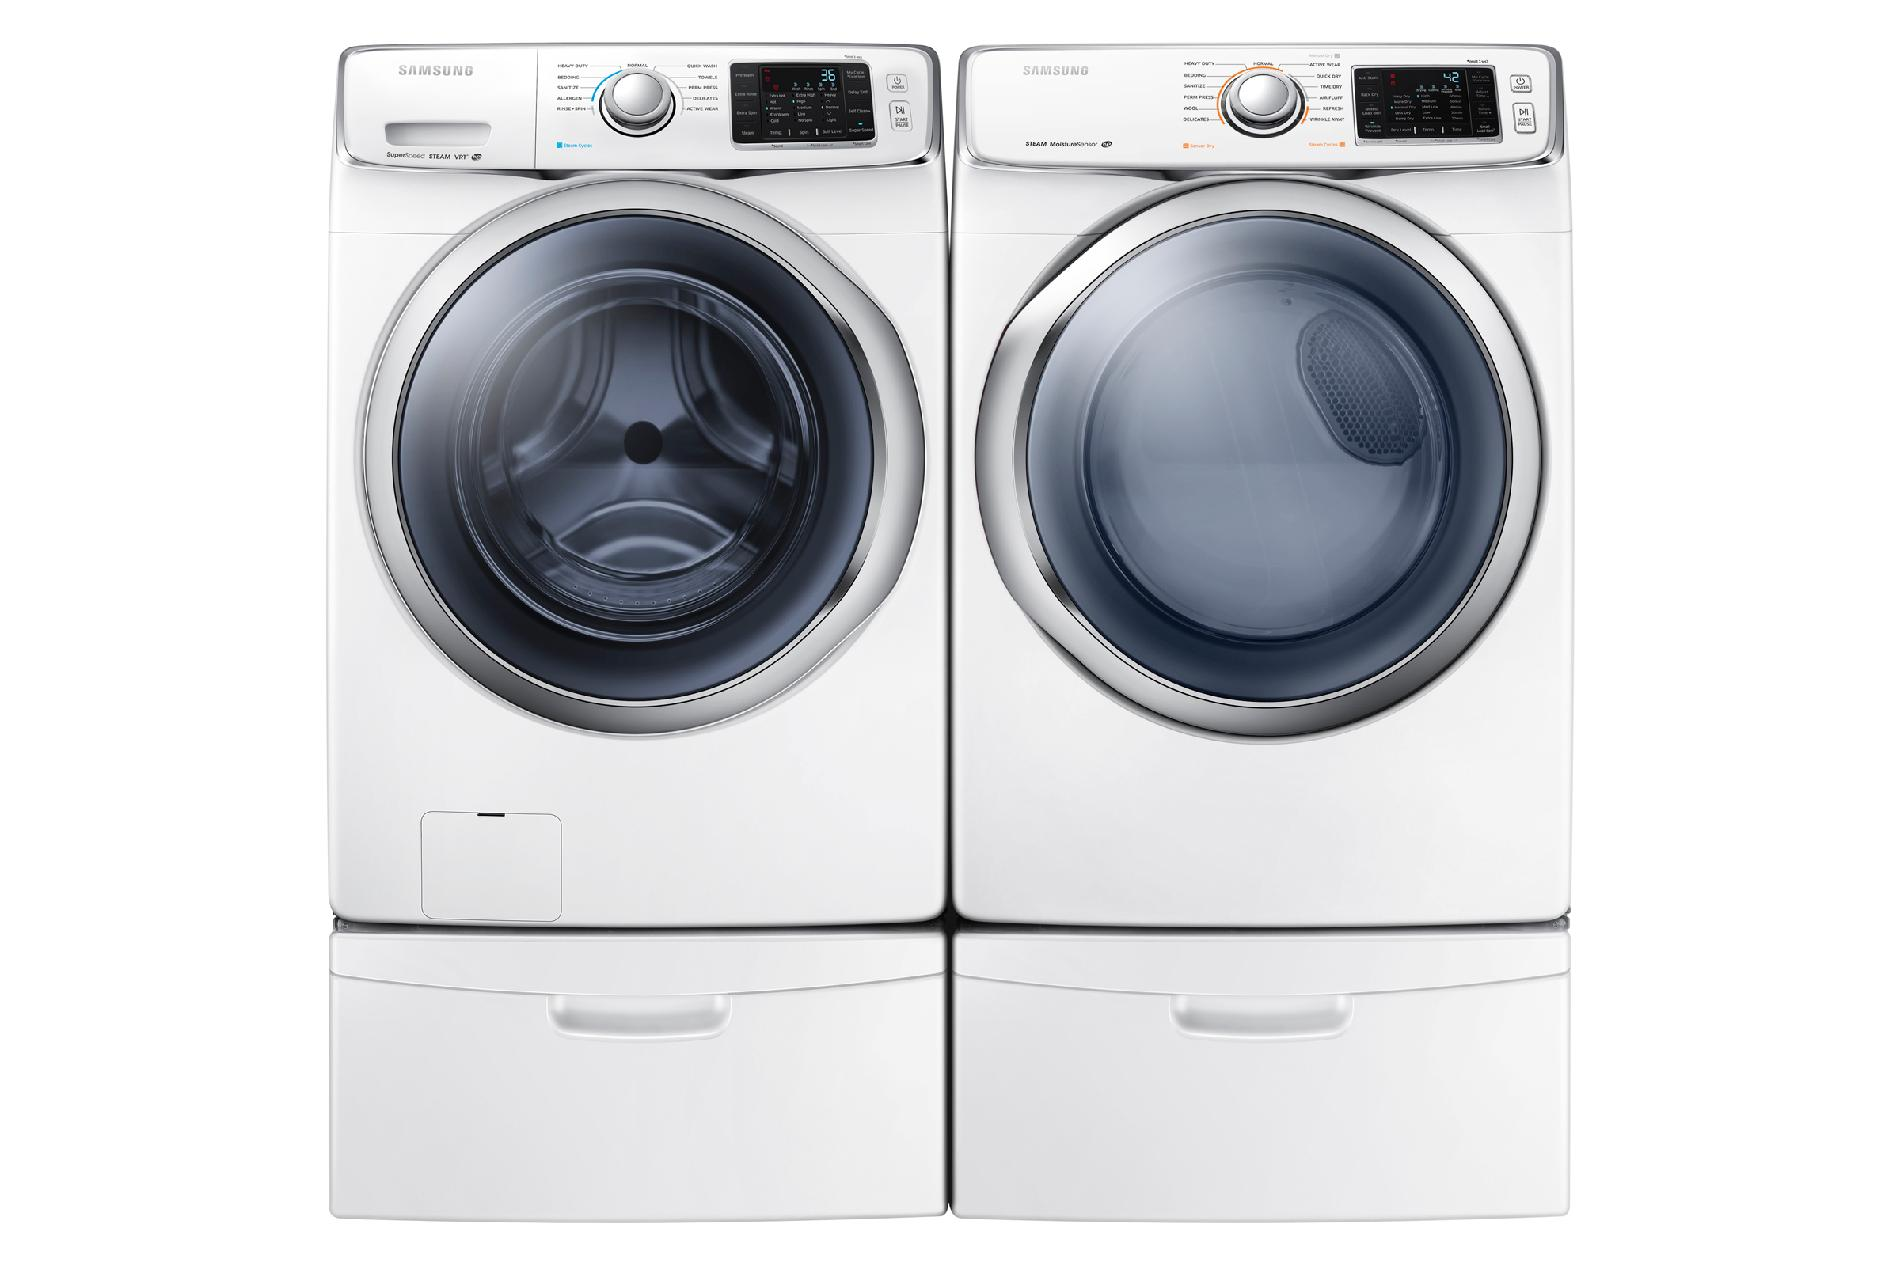 Samsung WF42H5400AW 4.2 cu. ft. Front-Load Washer - White